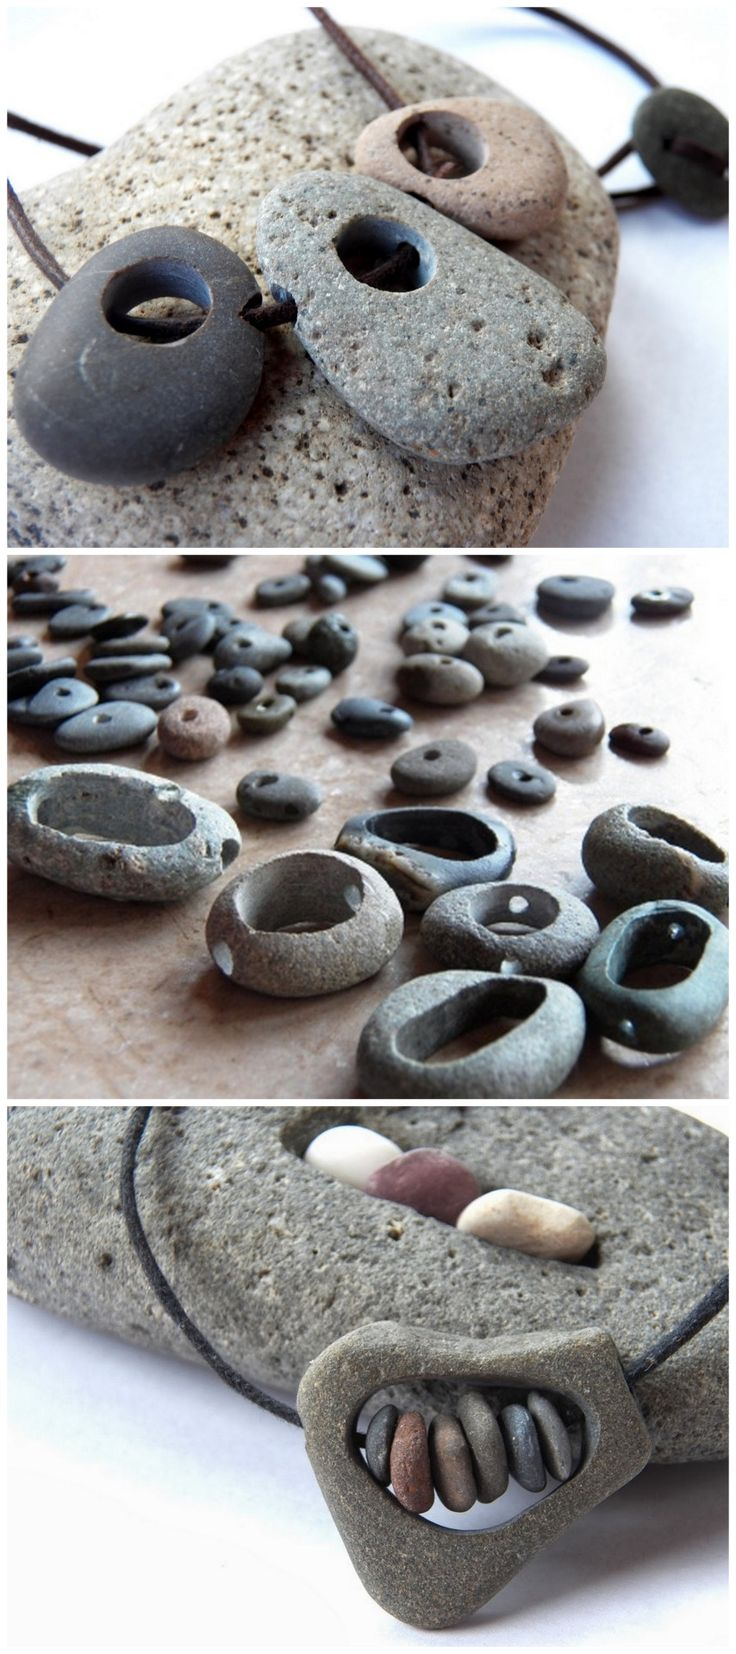 DIY Rock JewelryLive in Art has a series of tutorials on how to make drilled hole and hollowed out stone jewelry. • How to Drill Holes through Rocks from Live in Art here. • How to Hollow Out Rocks from Live in Art here. • How to Make Rivets in Rocks...